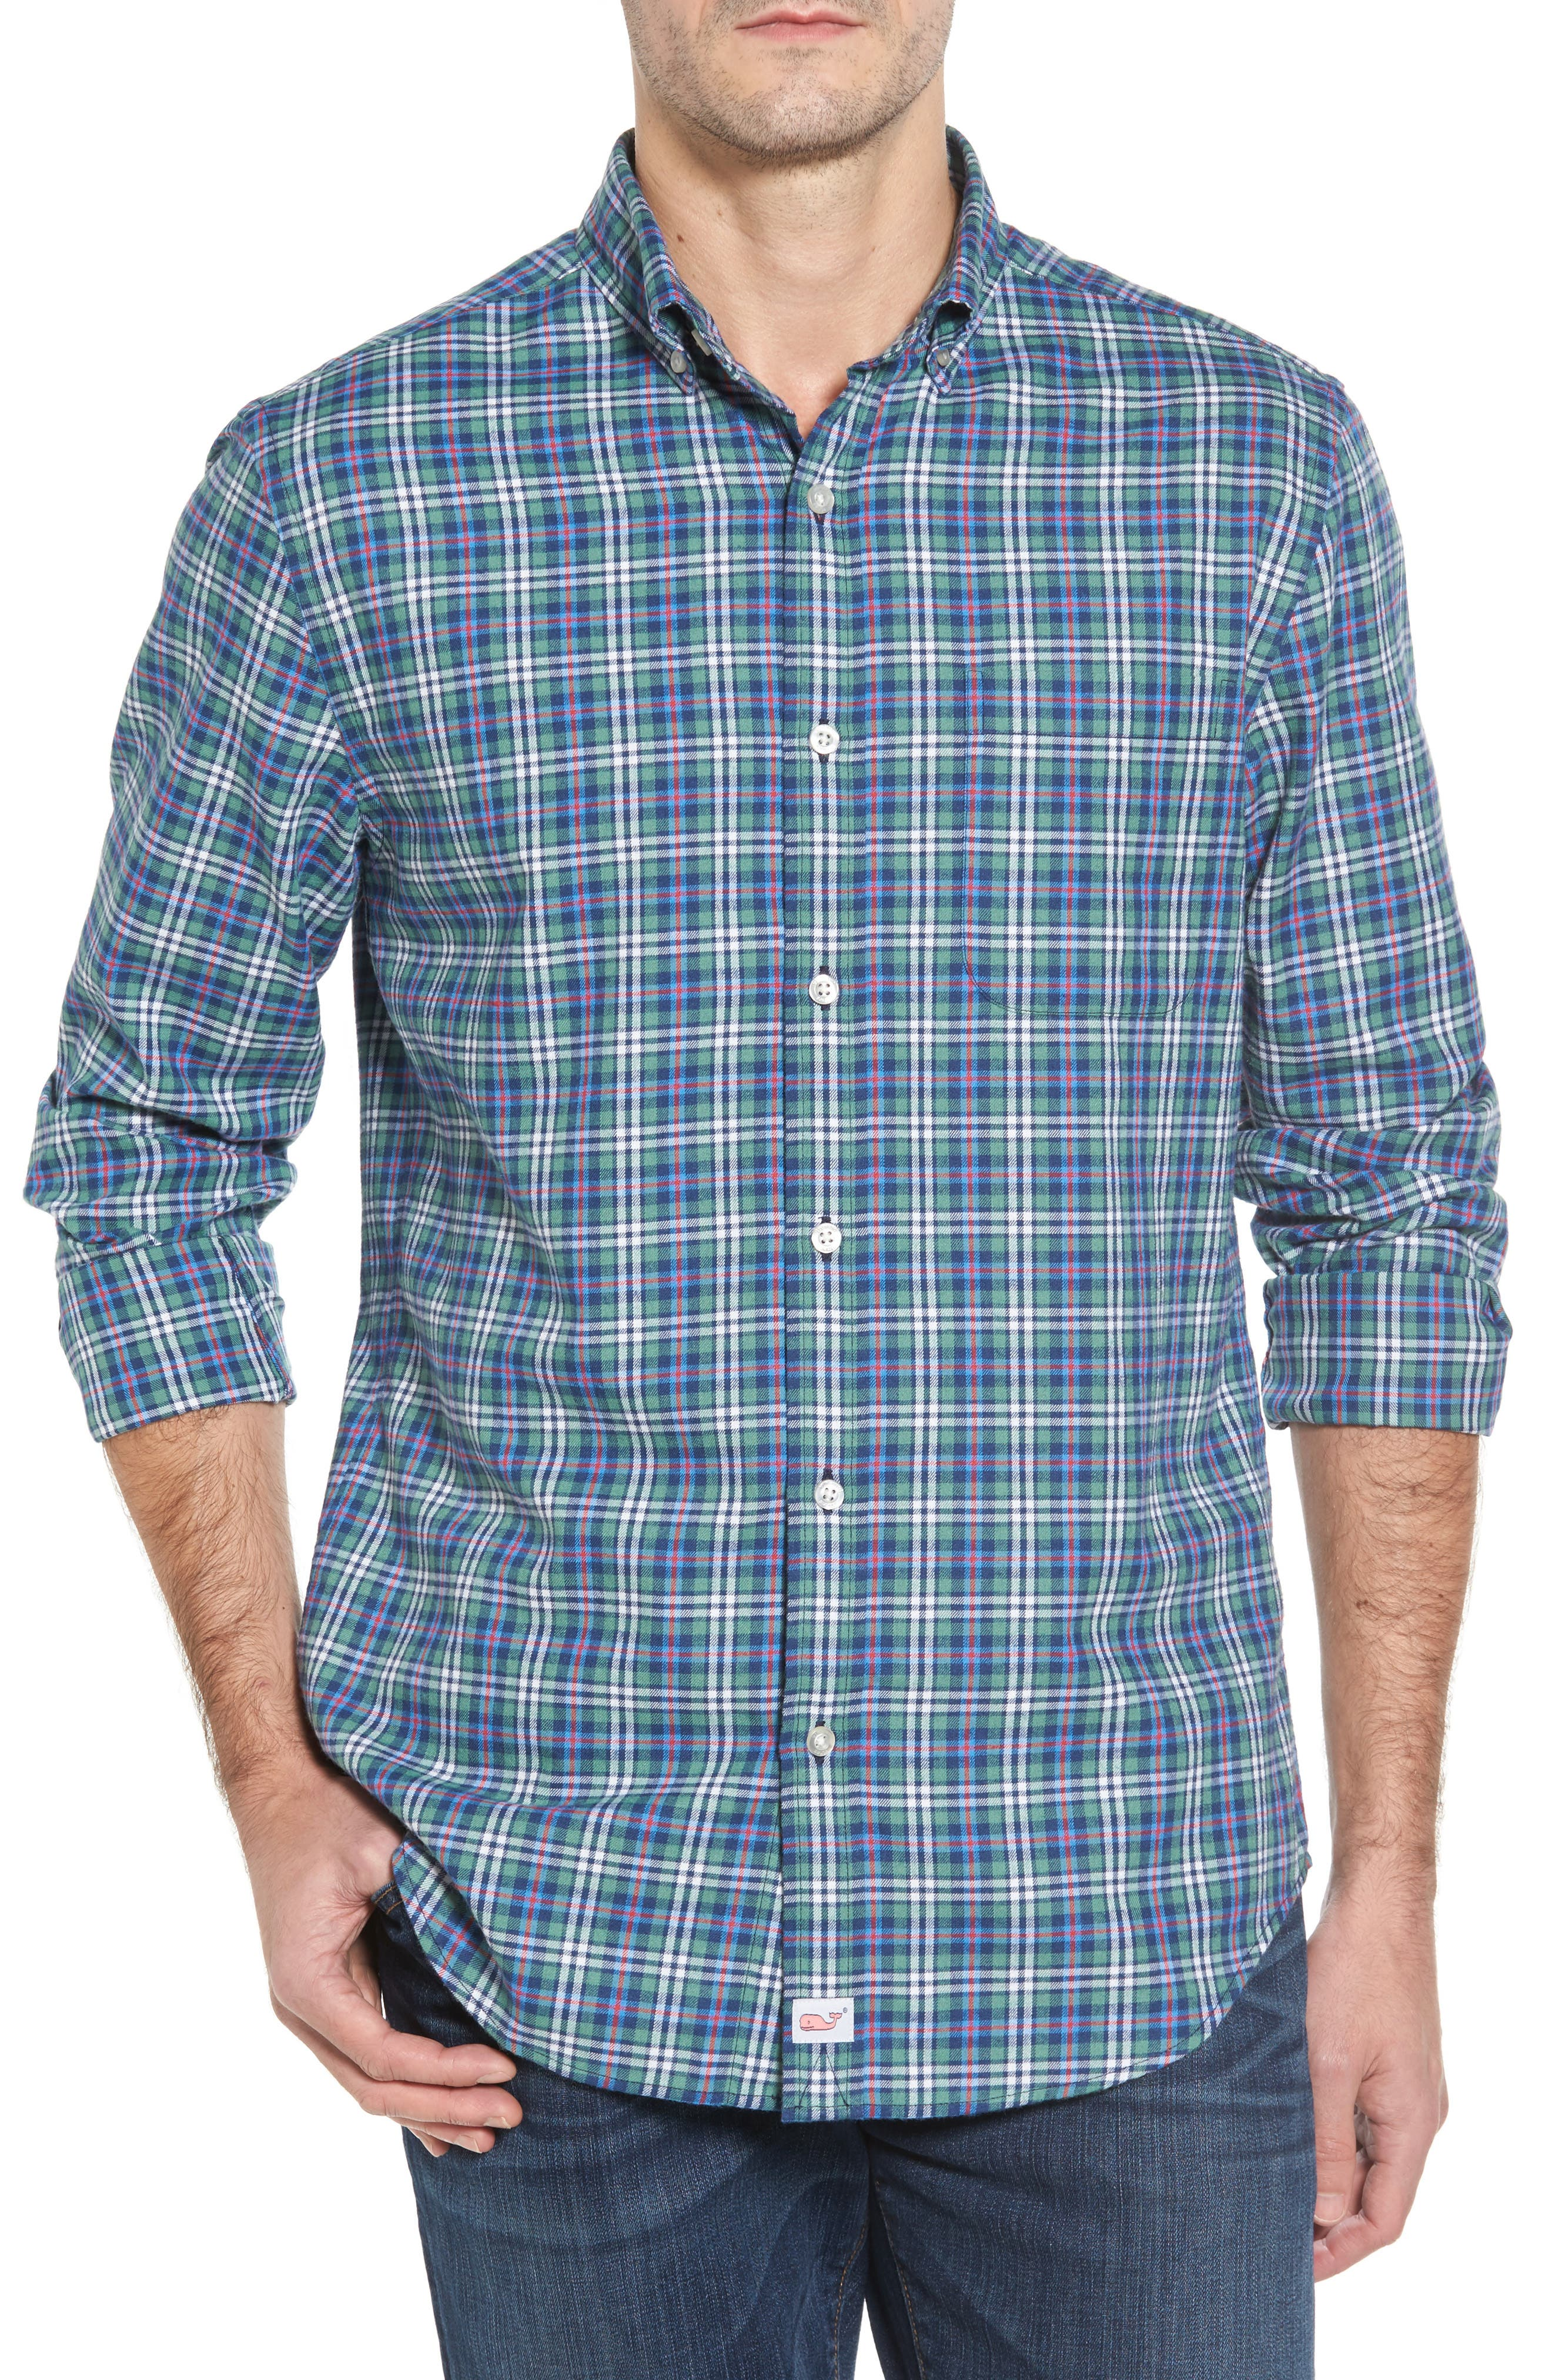 Murray Plaid Classic Fit Sport Shirt,                         Main,                         color, Turf Green